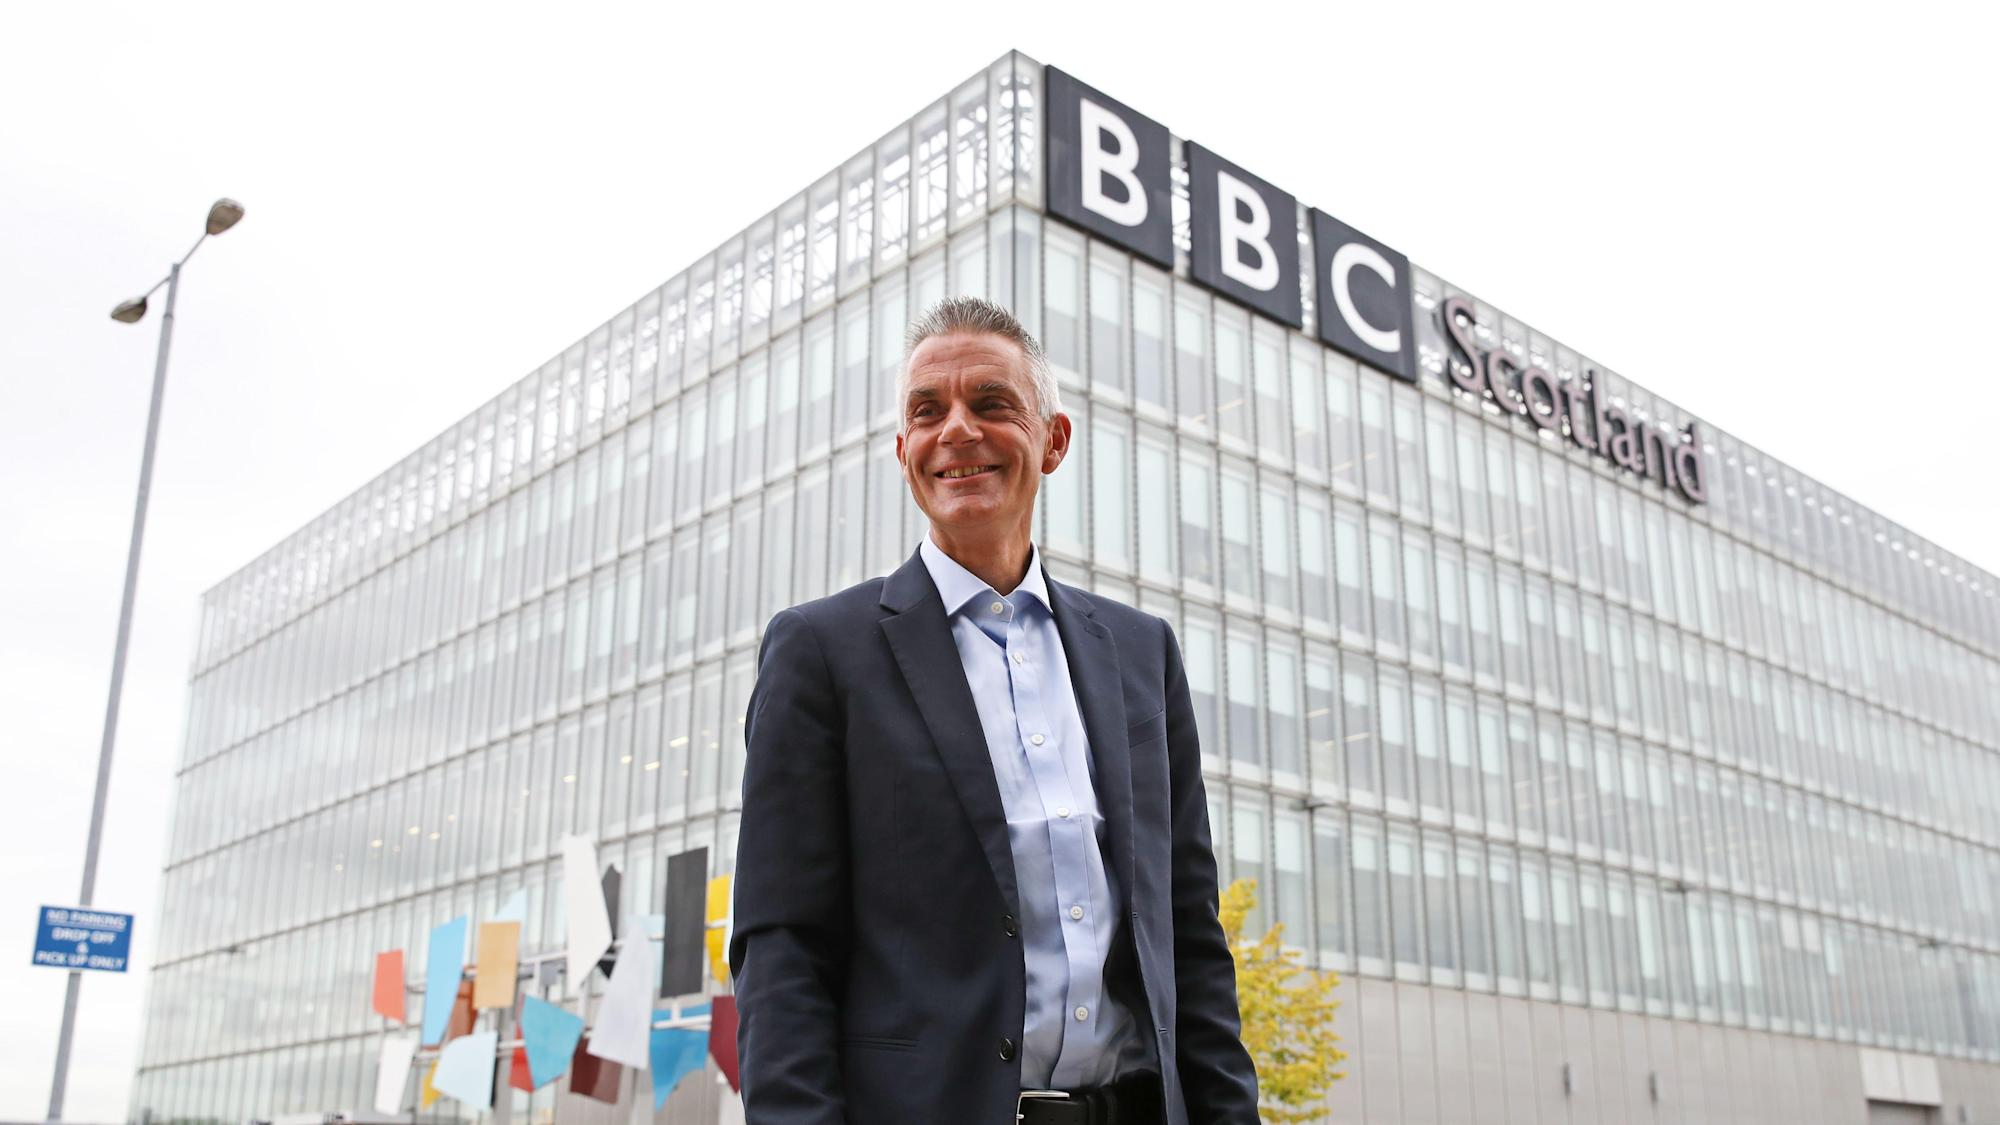 BBC boss warns of 'growing assault on truth' around the world